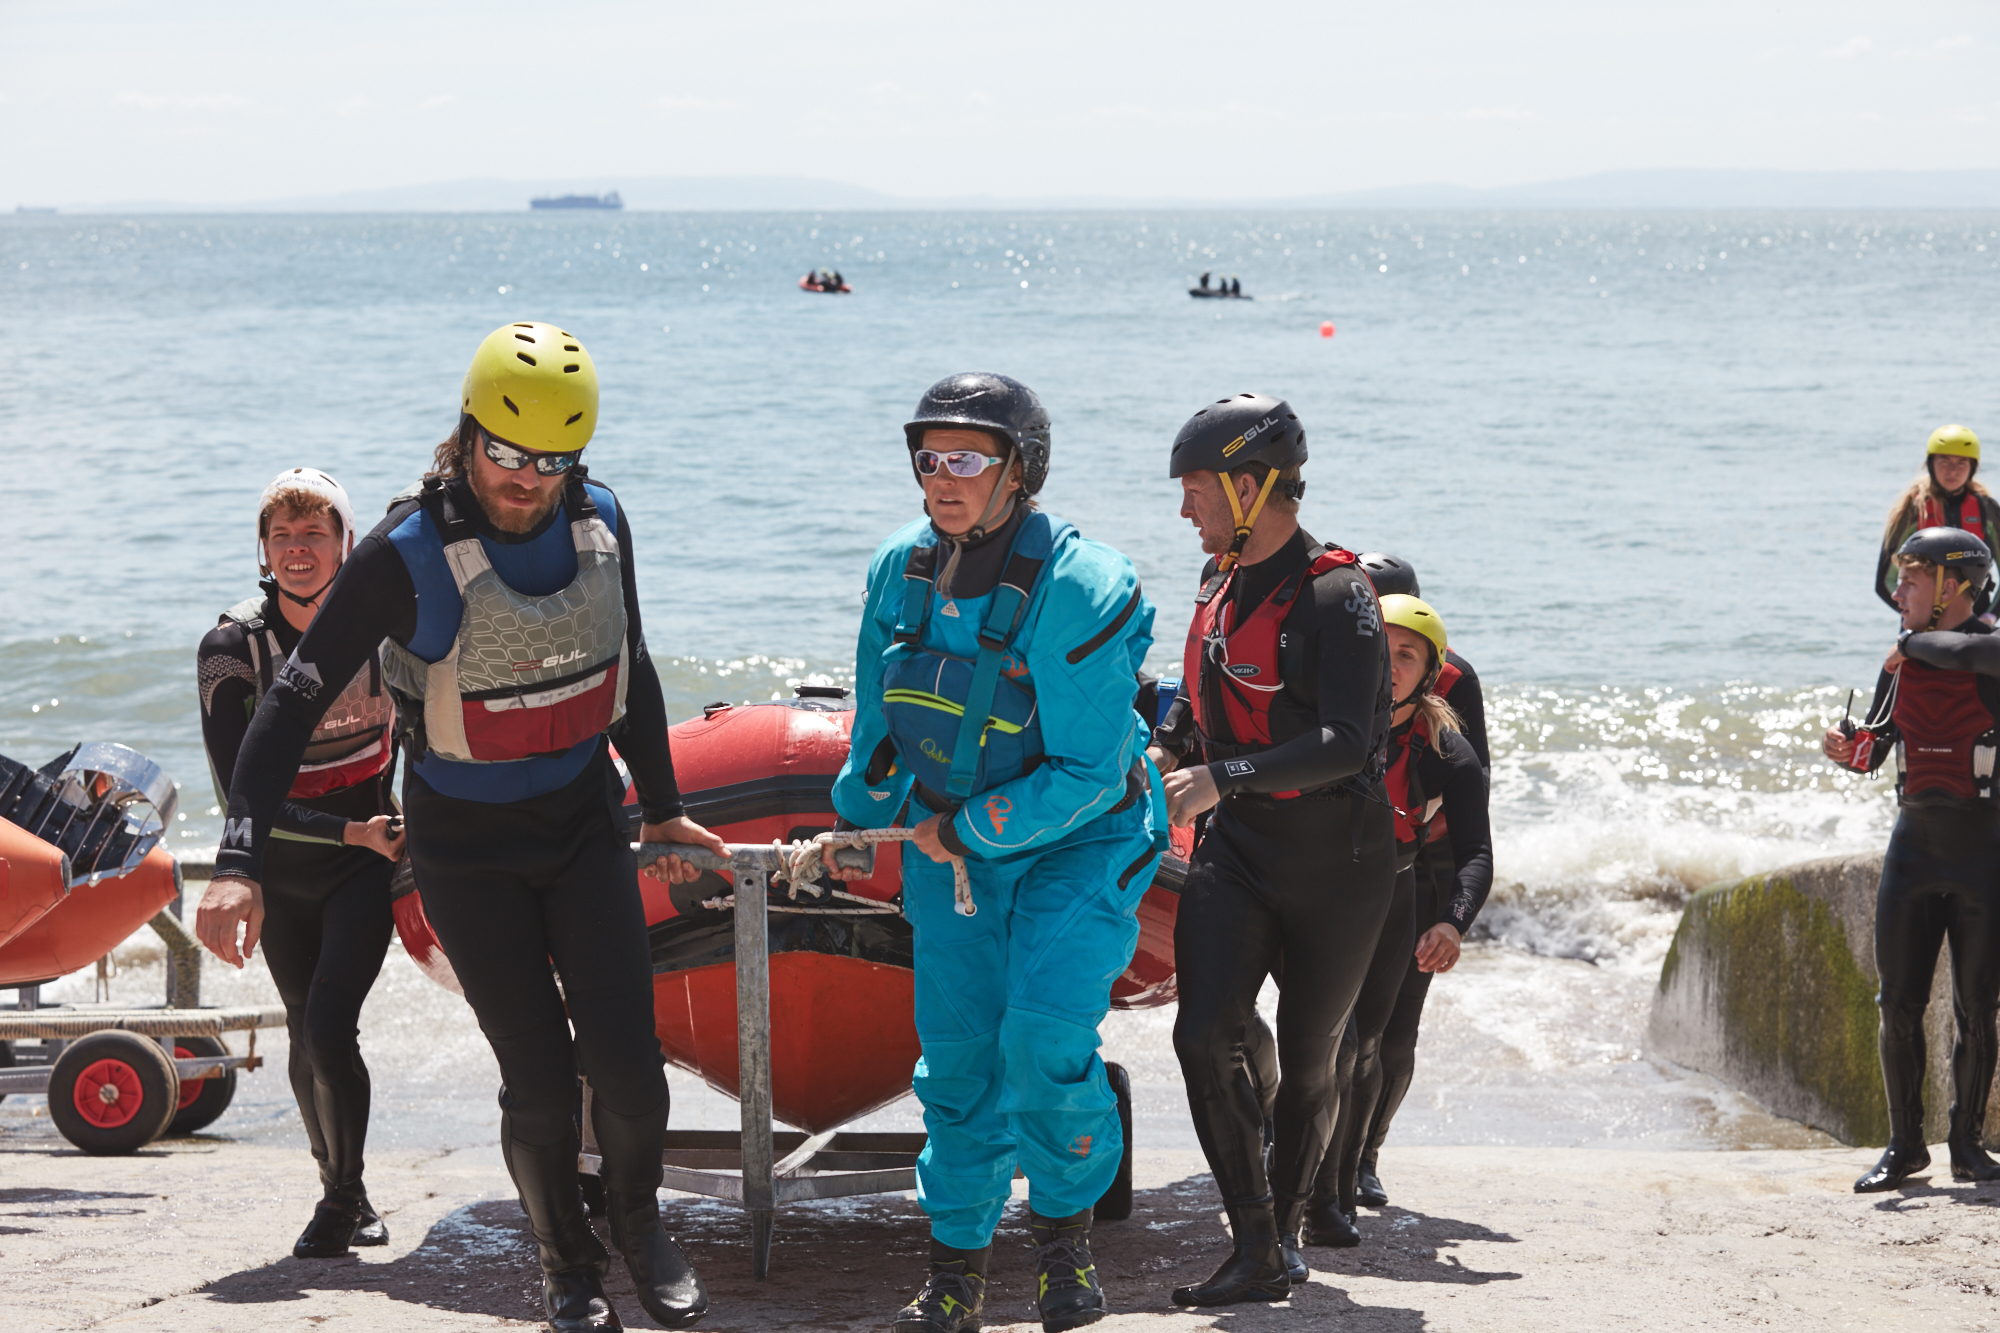 A group of people in wetsuits and lifejackets bringing a lifeboat out of the water